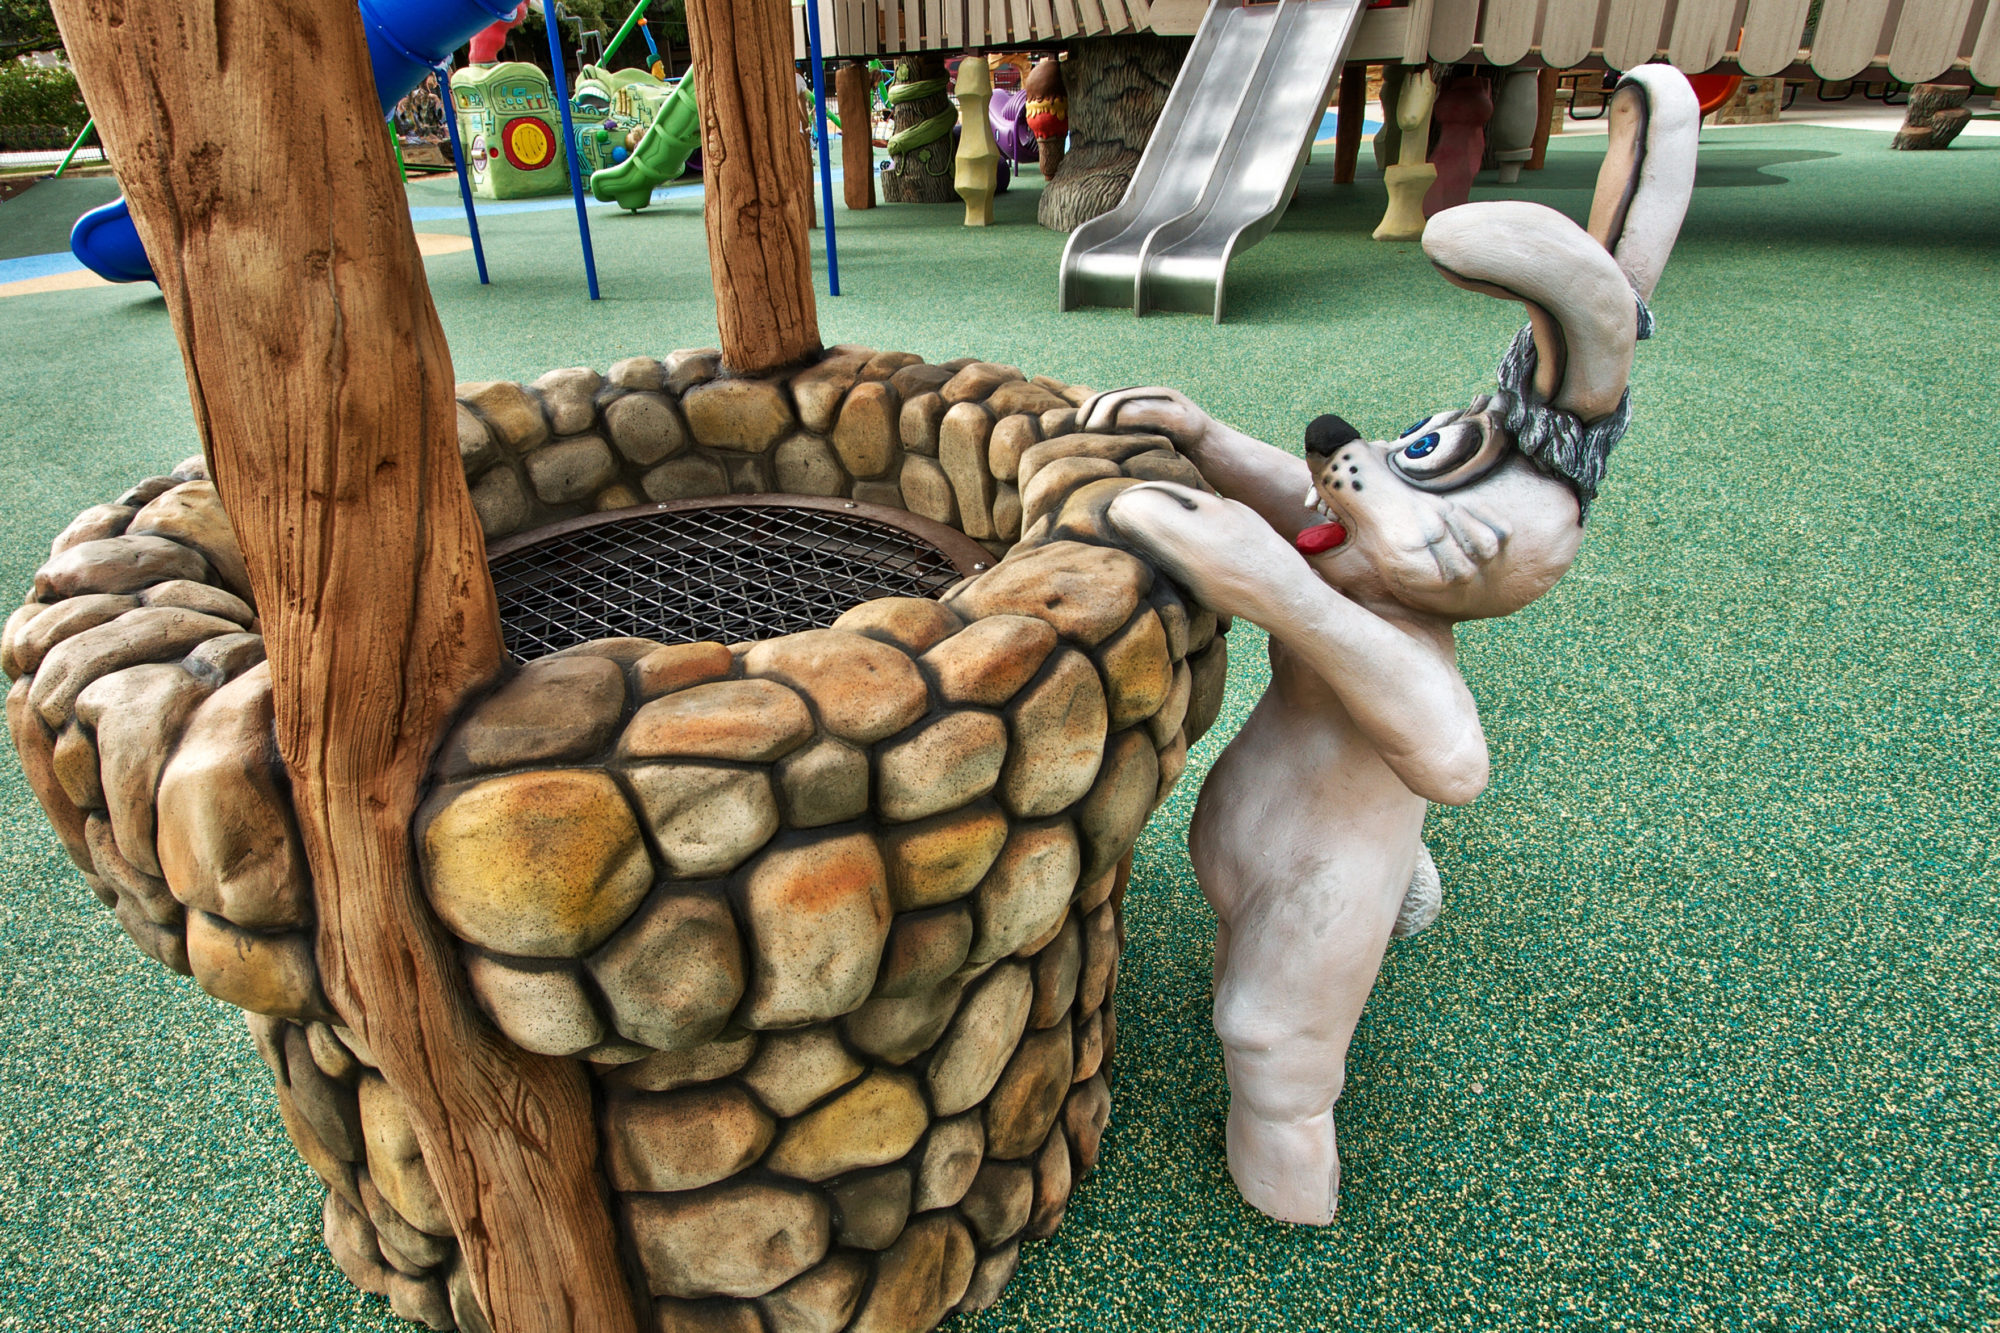 Animal themed playground